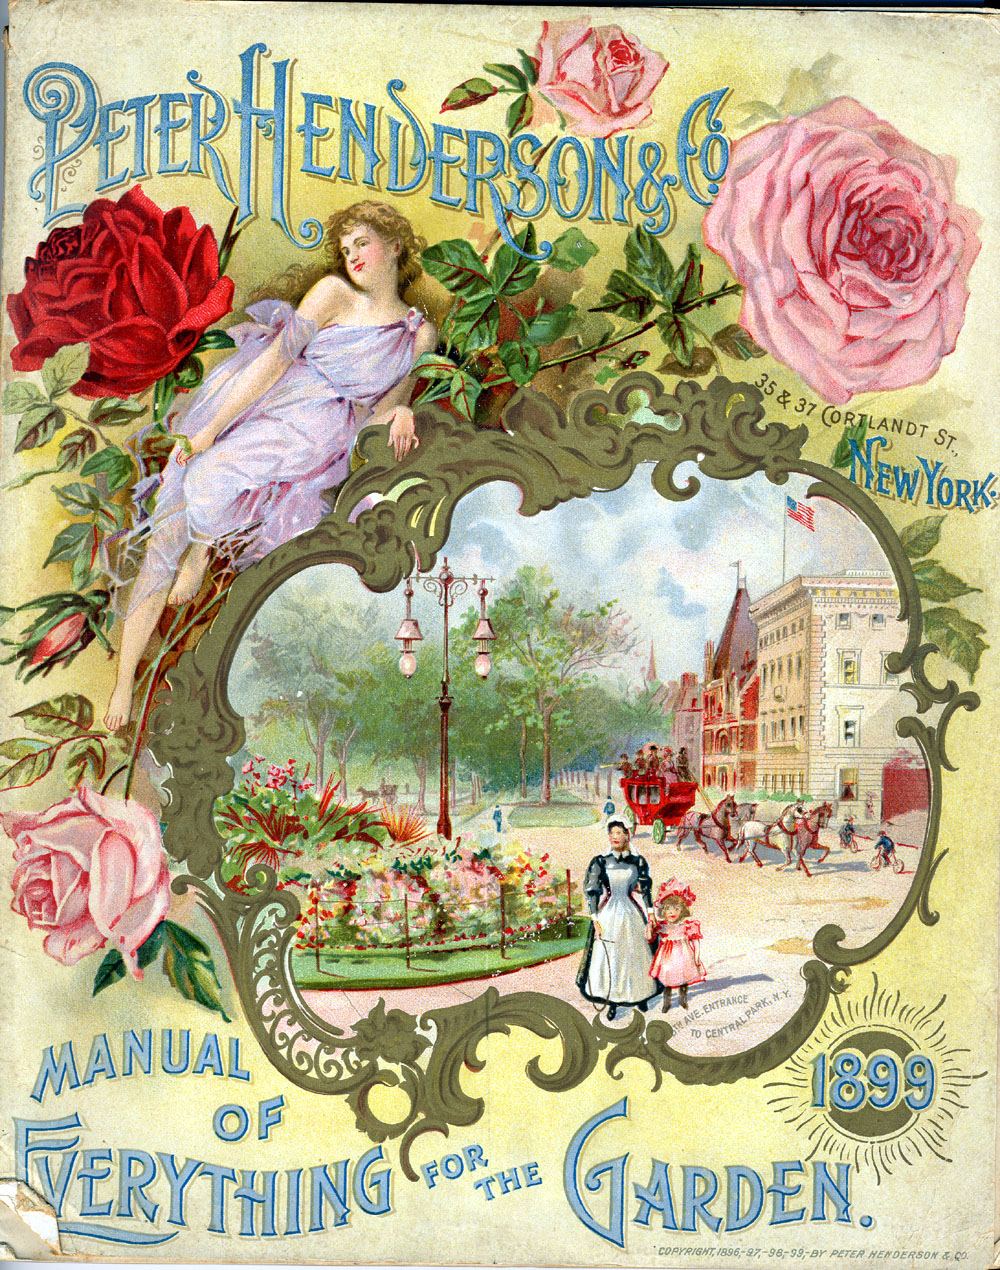 Peter Henderson & Co., Manual of Everything for the Garden, 1899, Front Cover